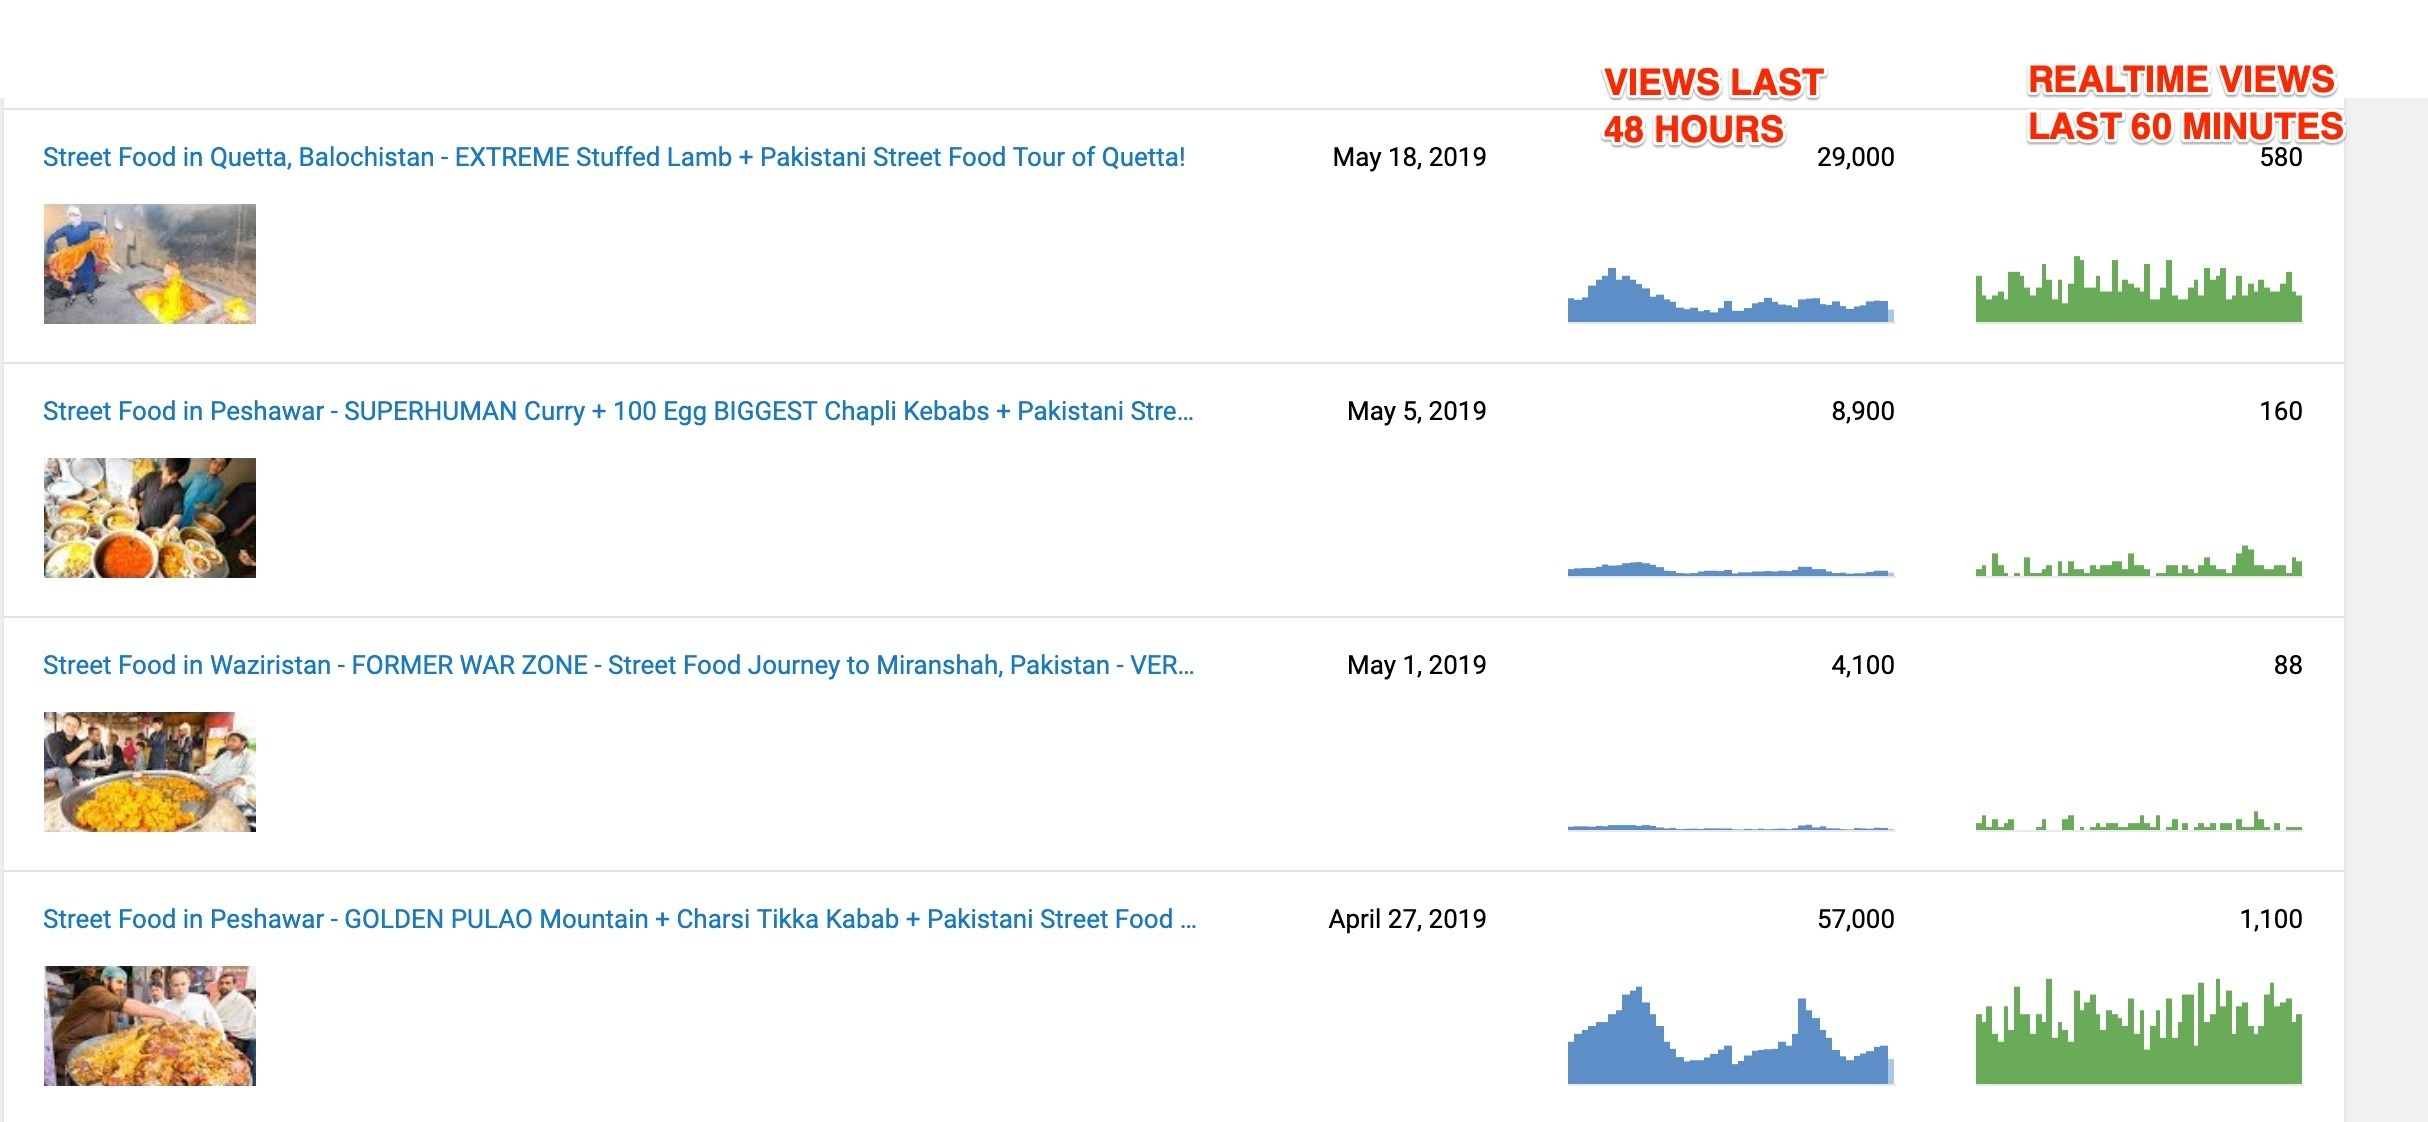 realtime youtube views